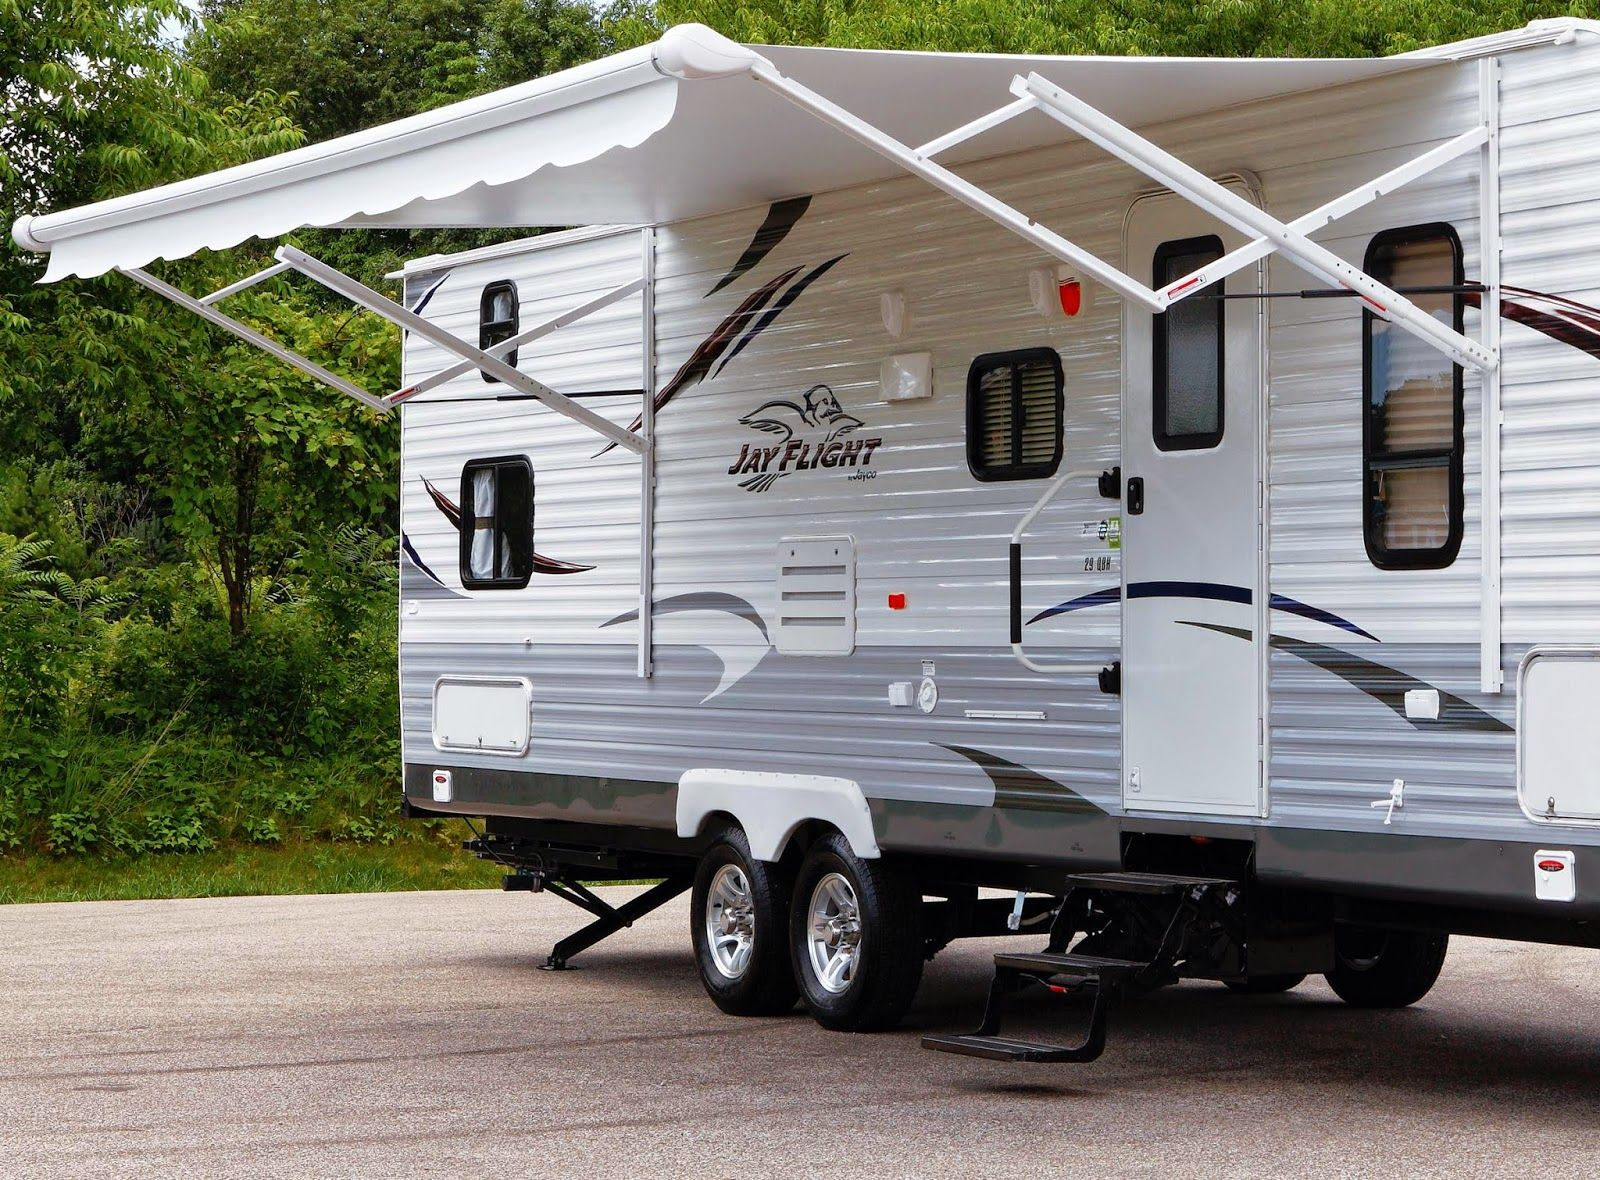 5 Mistakes to Avoid When Caring for the Exterior of Your RV